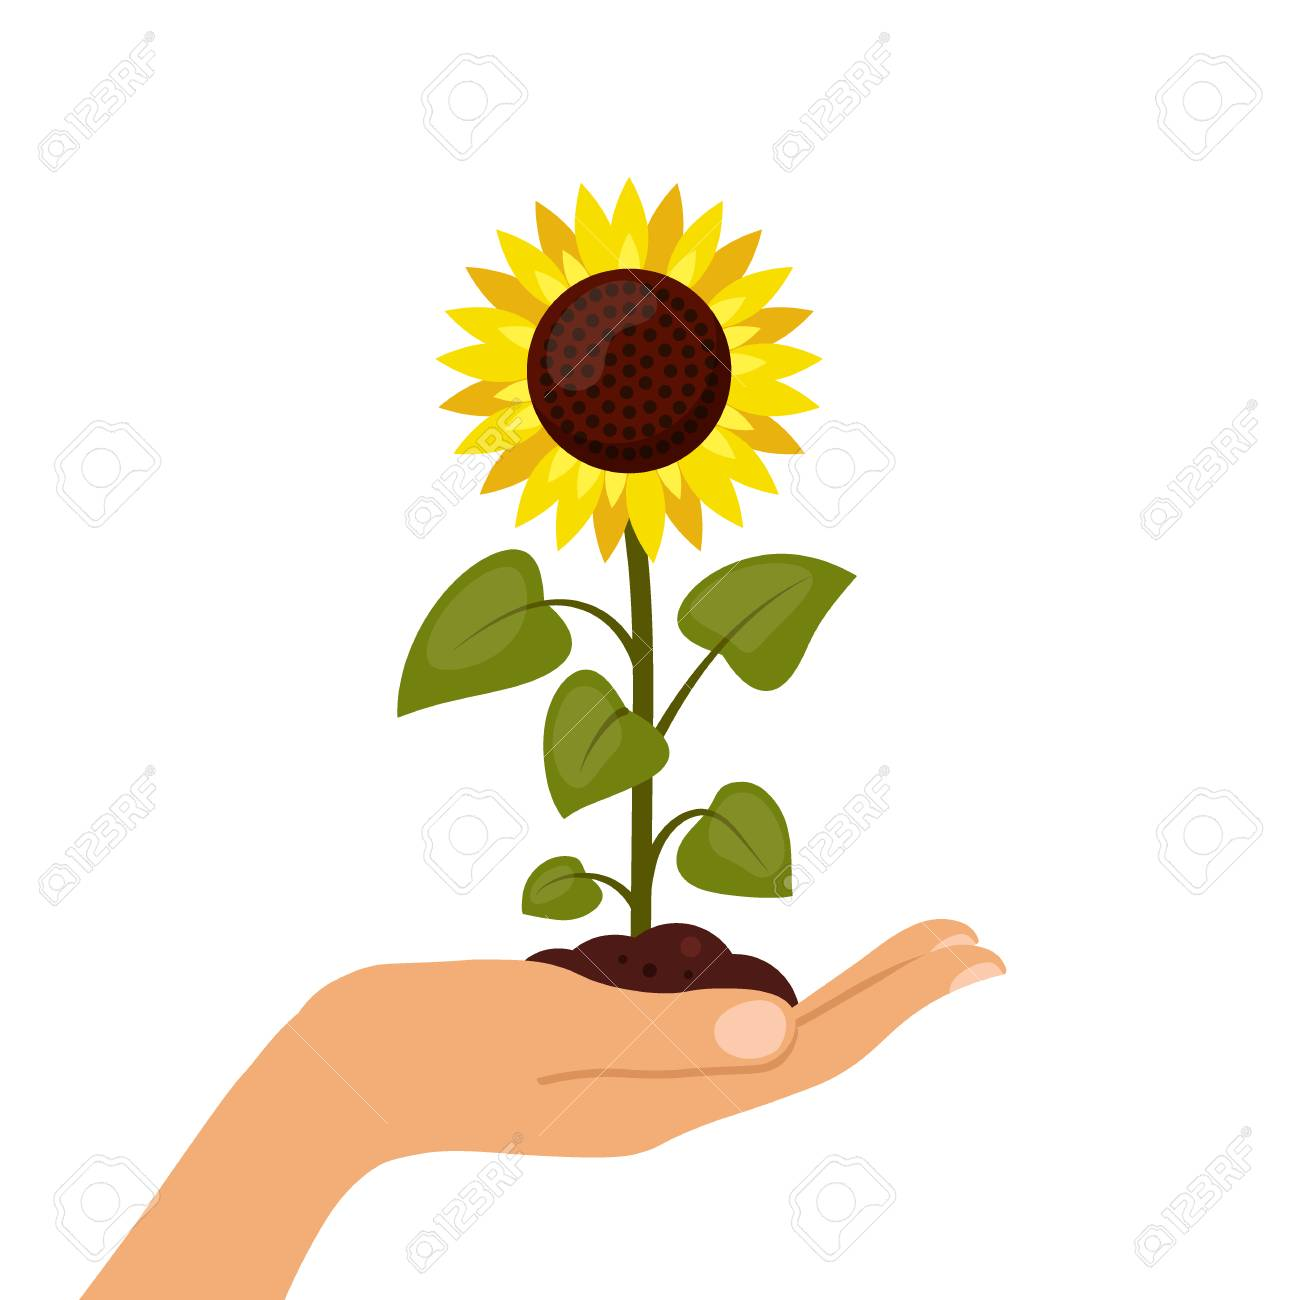 sunflower cartoon in hand isolated on a white background summer rh 123rf com sunflower cartoon background sunflower cartoon wallpaper